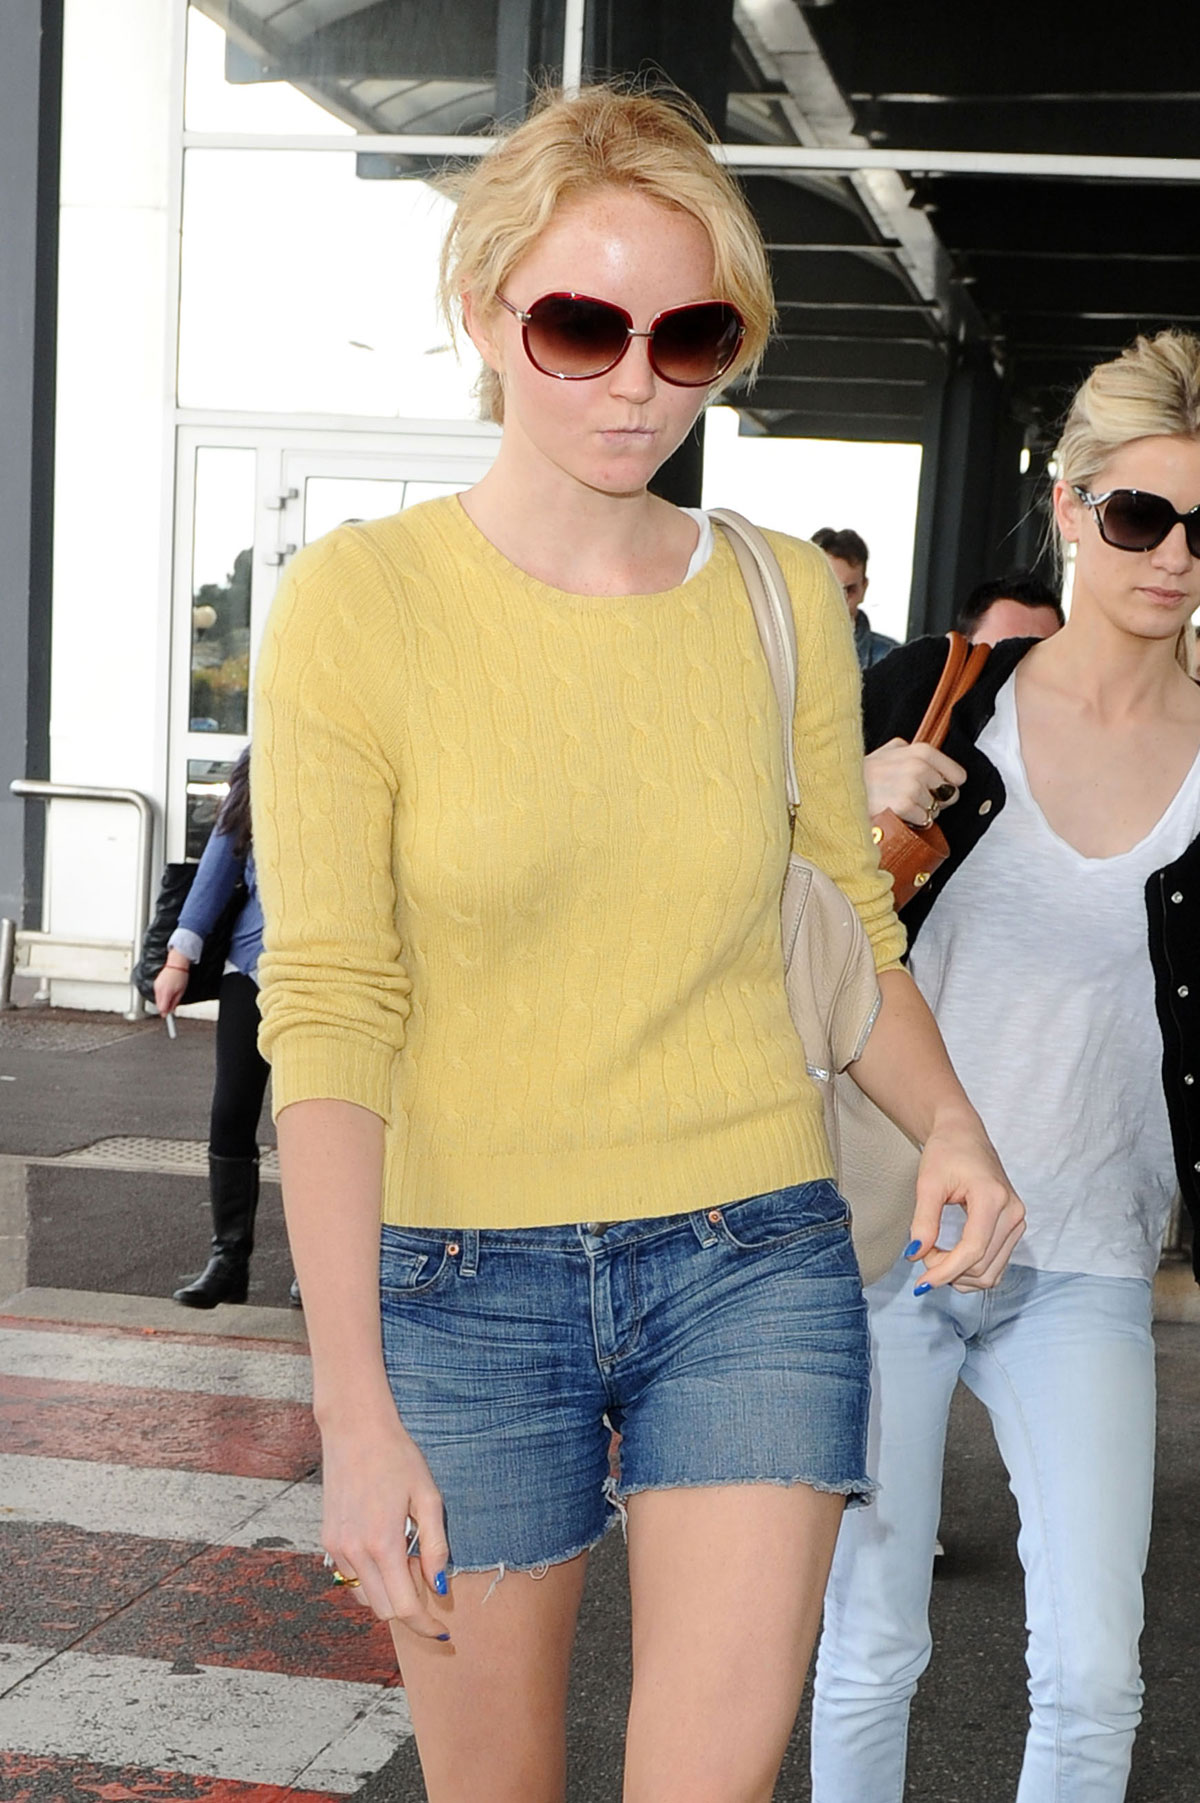 LILY COLE Leggy Candids at Nice Airport - HawtCelebs